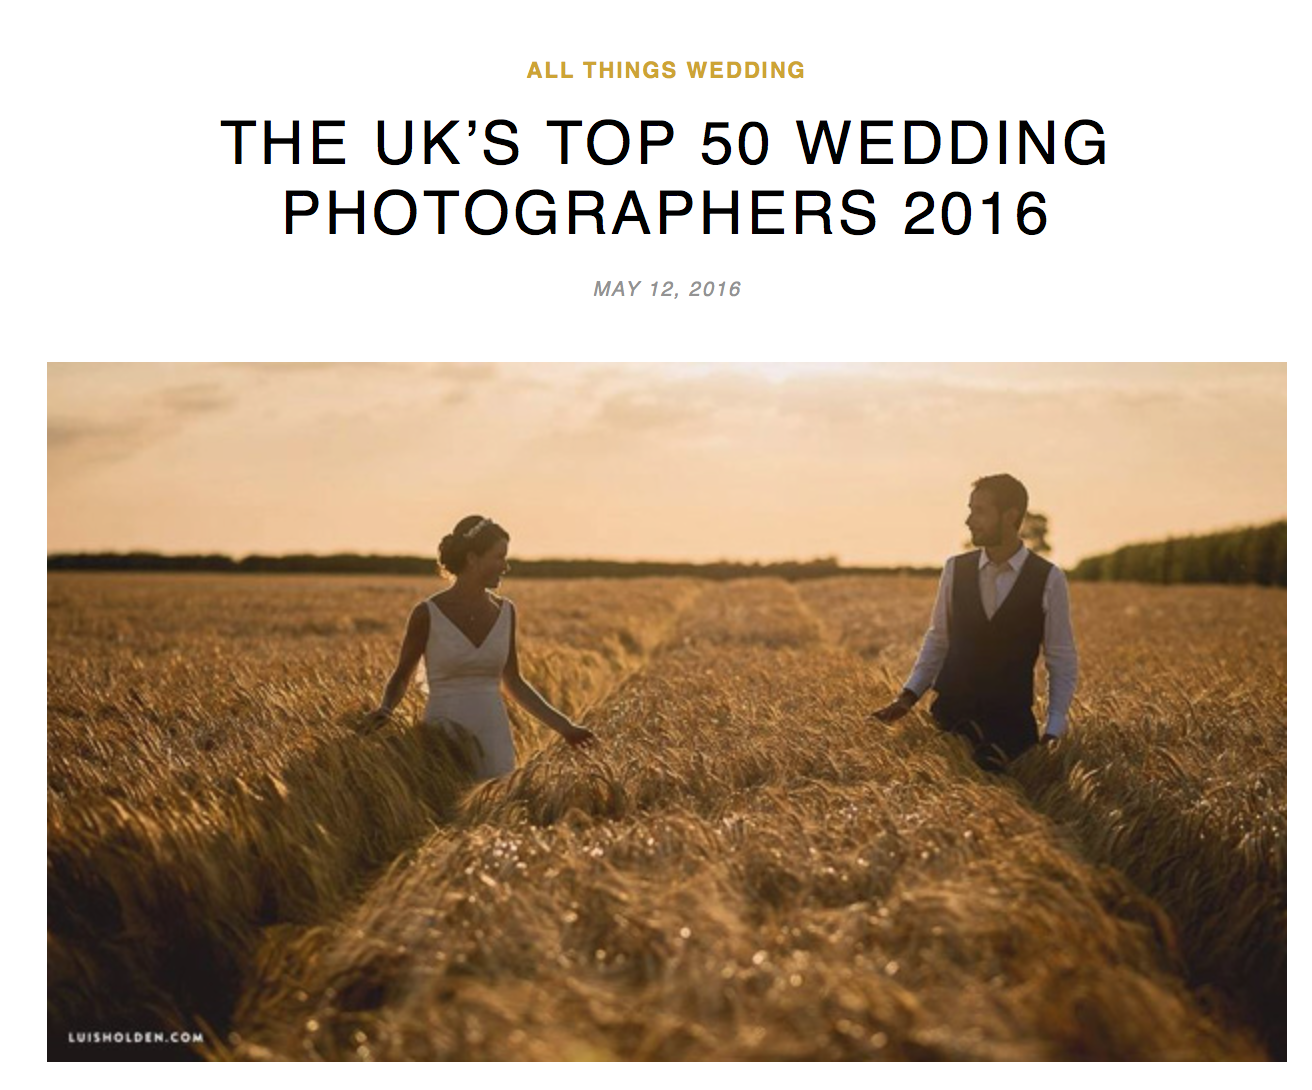 UK's Top 50 Wedding Photographers 2016